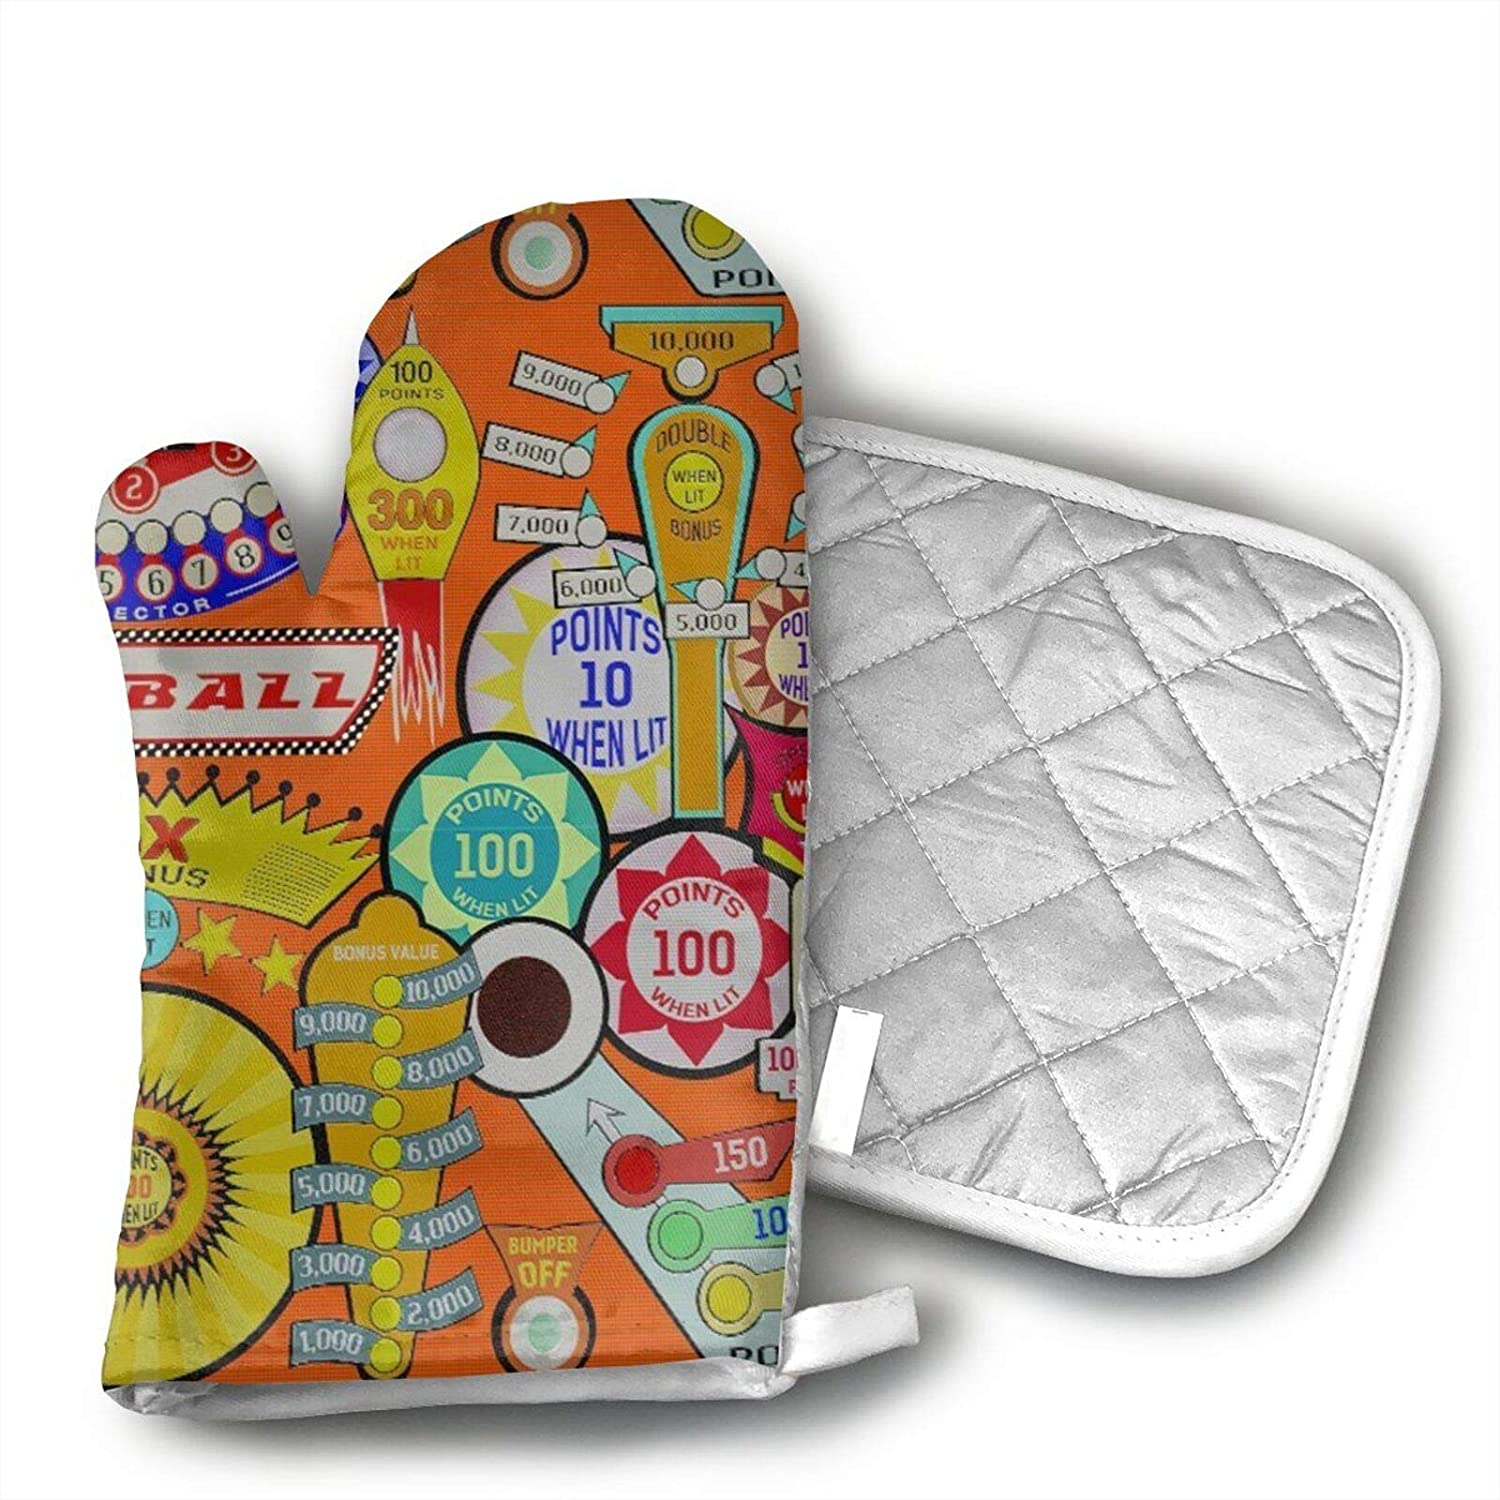 antcreptson Cartoon Pinball Orange Oven Mitts and Potholders BBQ Gloves - Non-Slip Cooking Gloves for Kitchen Cooking Baking Grilling